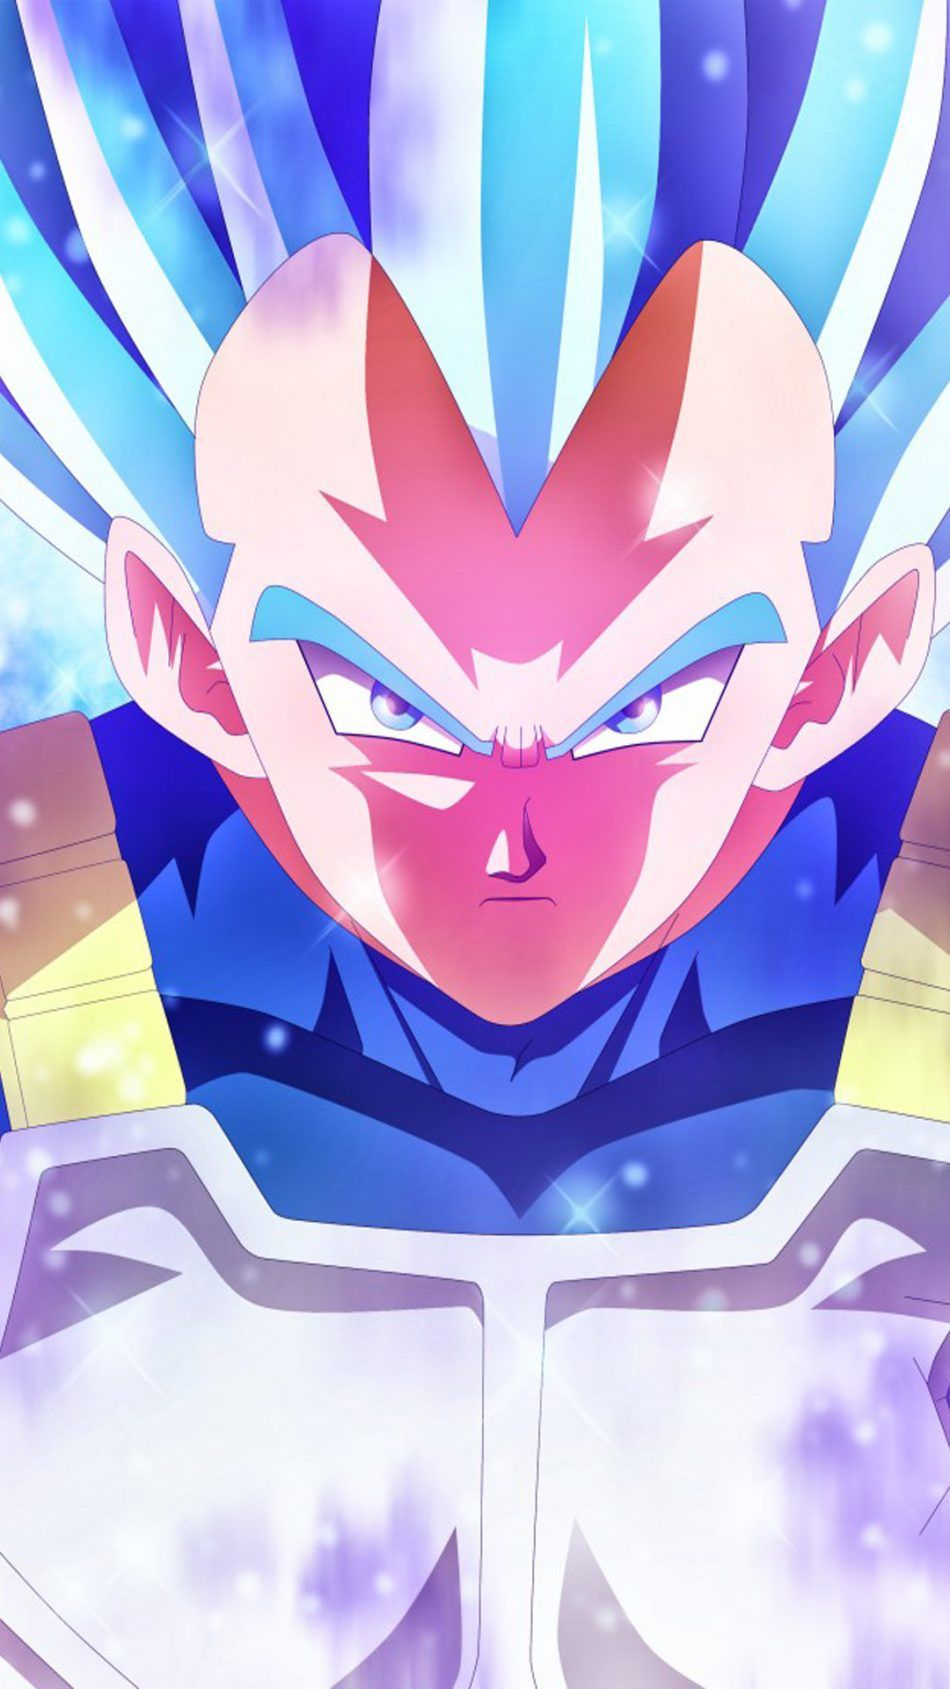 Vegeta Dragon Ball Super Hd Mobile Wallpaper Dragonballsuper Arte Dragon Ball Dragon